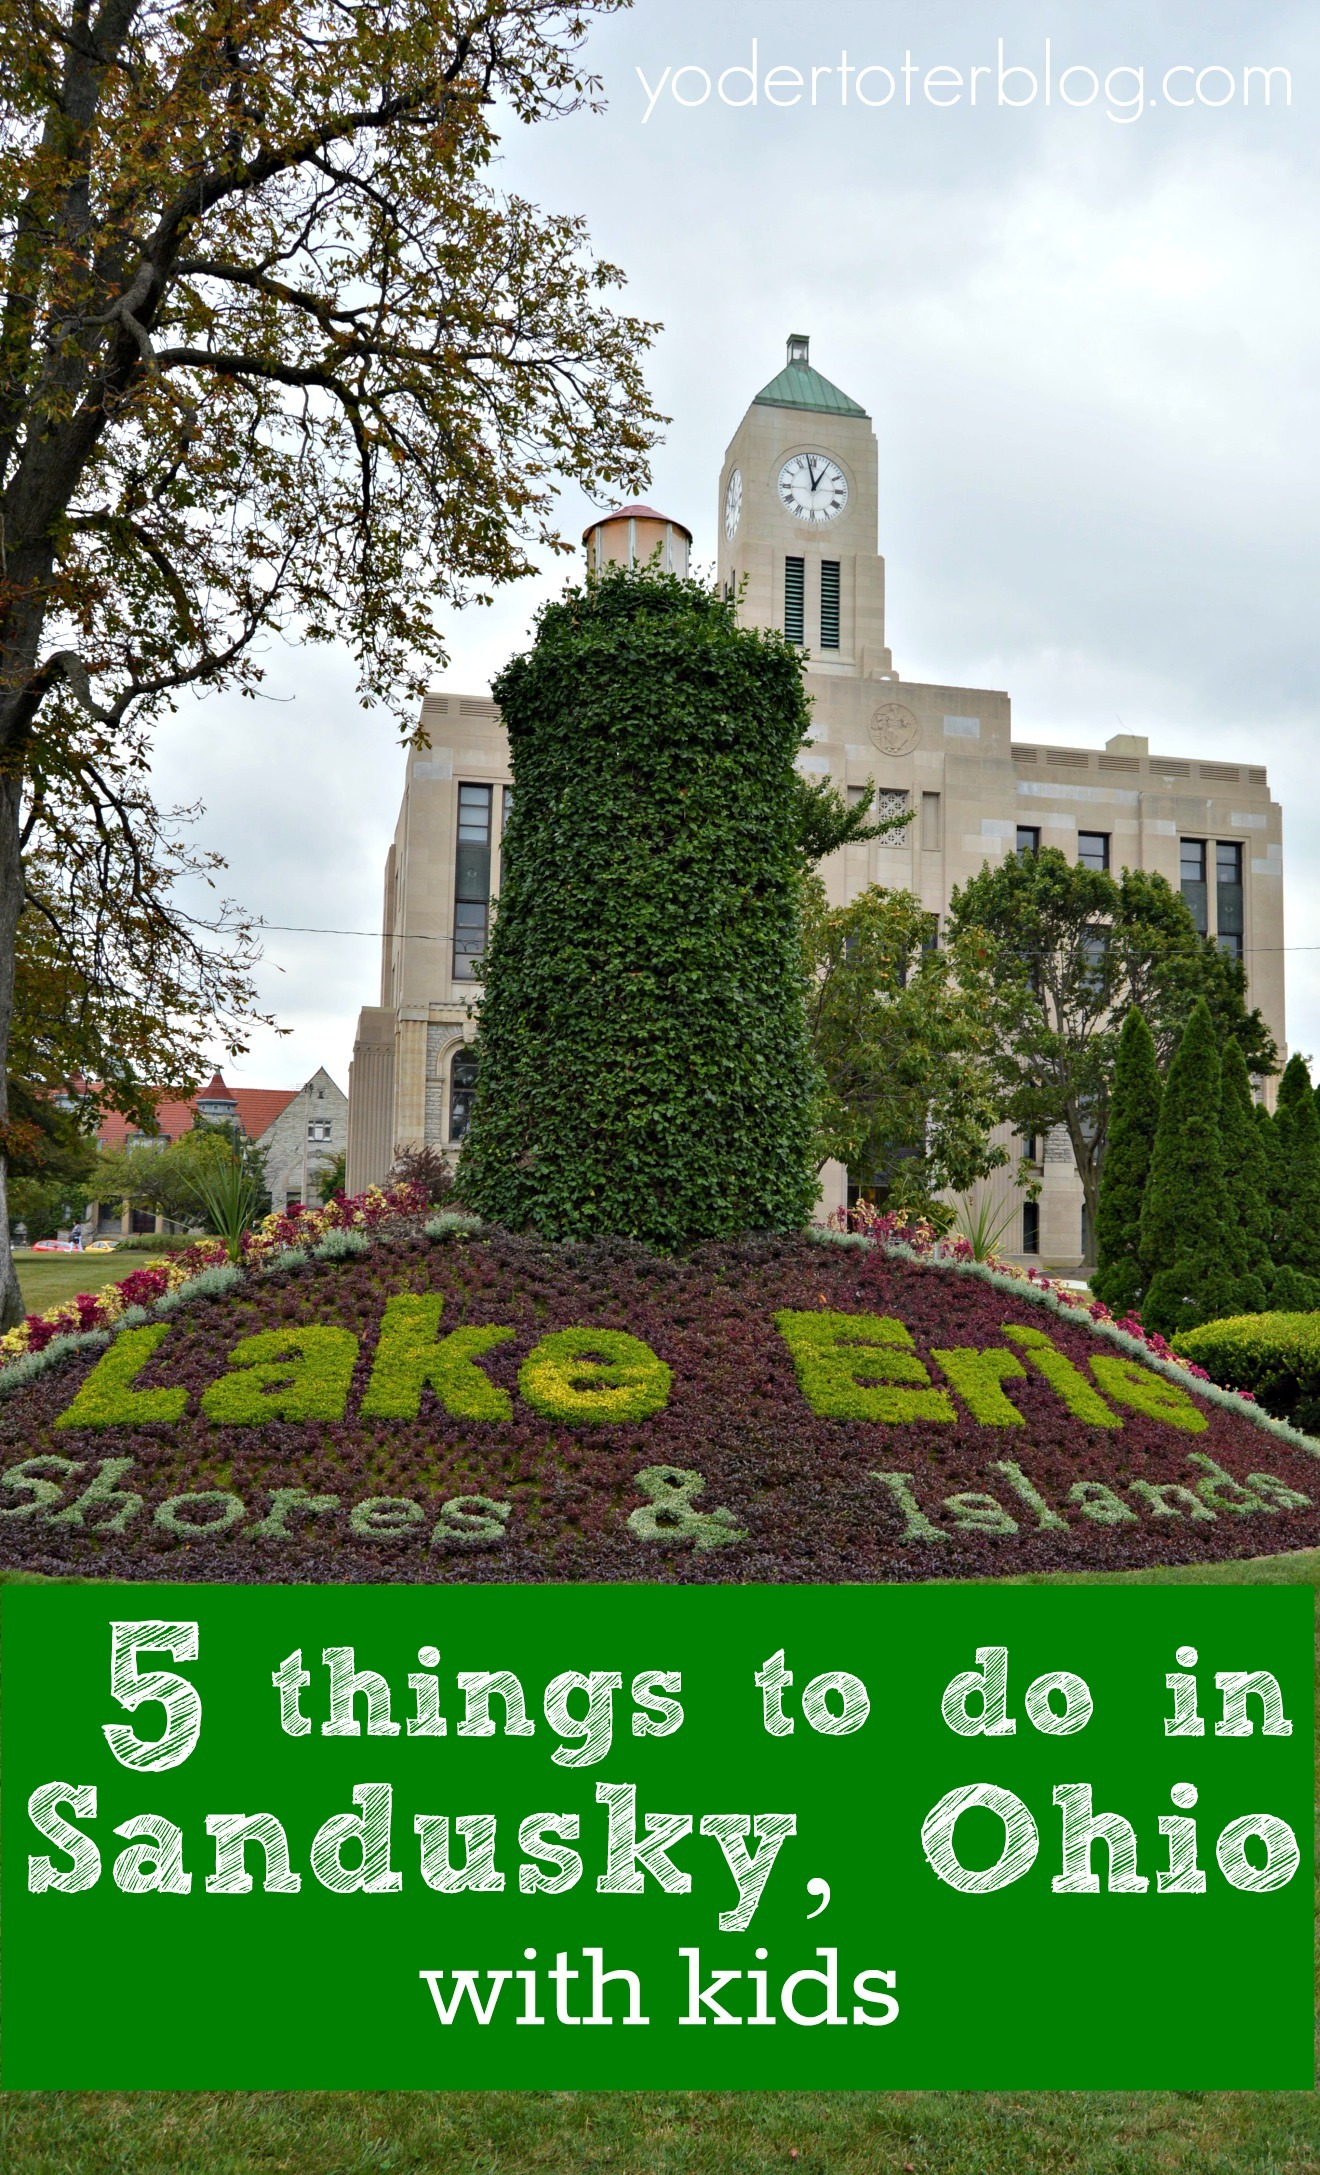 Things to do in Sandusky, Ohio that aren't Cedar Point! Make sure you venture into town and find the points of interest that will wow your family. Sandusky is so much more than rollercoasters!